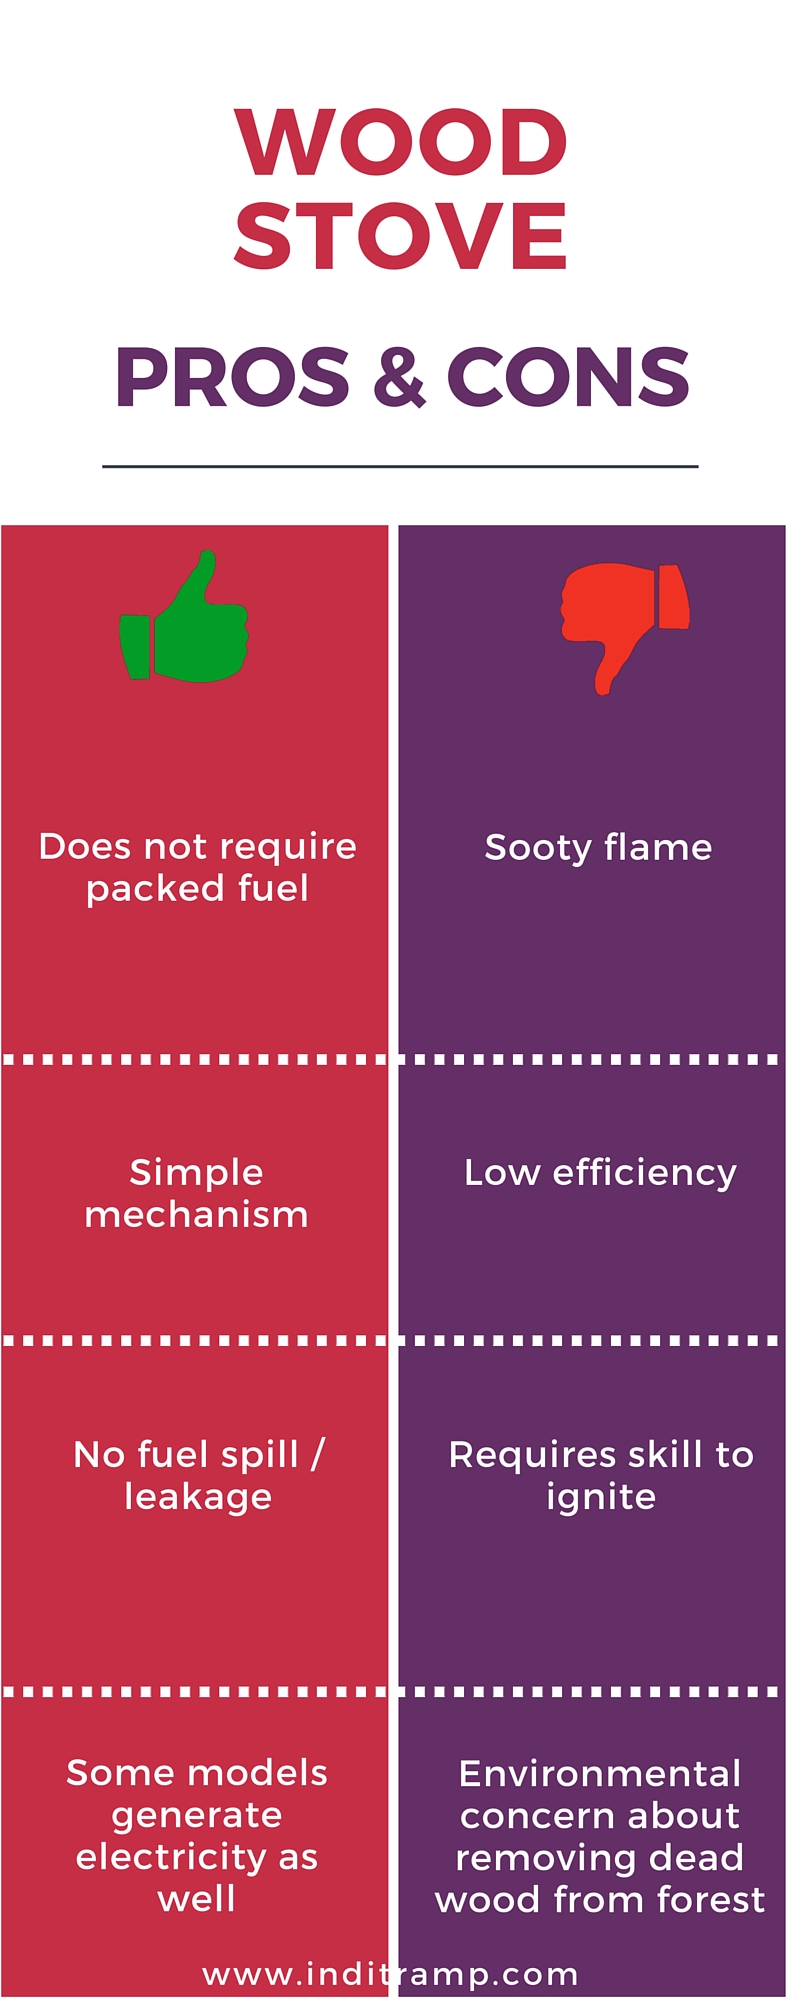 Infographic summarising the pros and cons for a wood burning stove